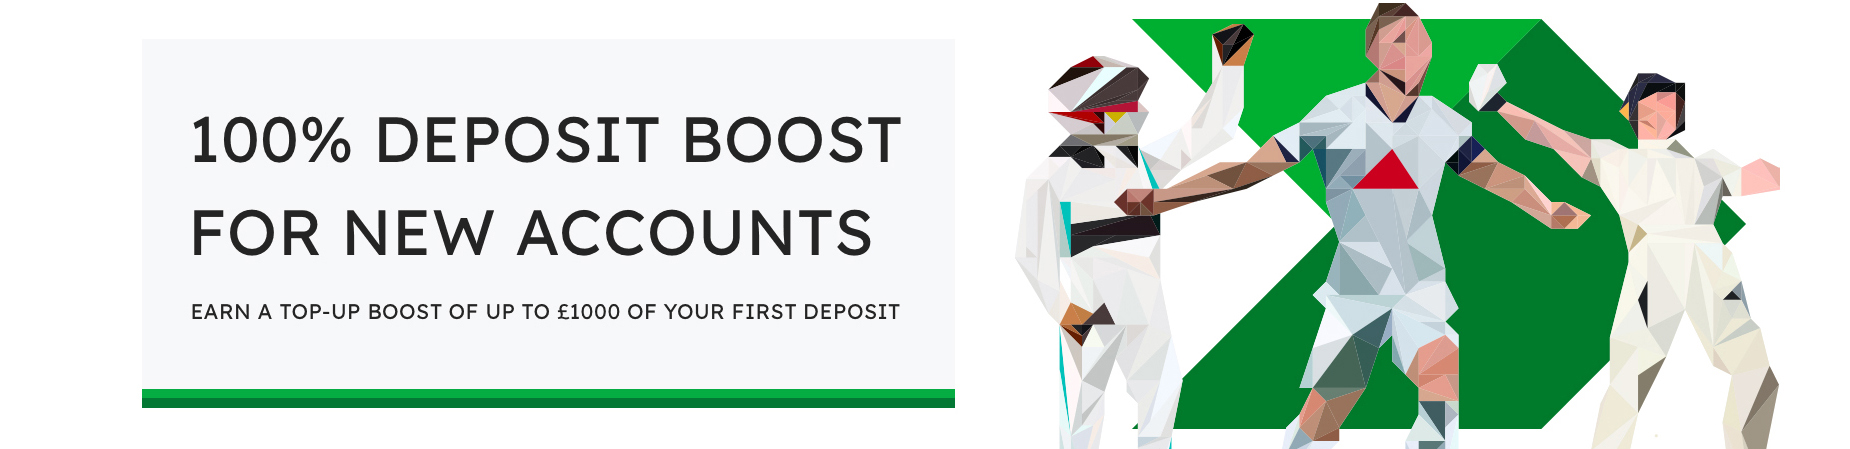 New Account Deposit Boost